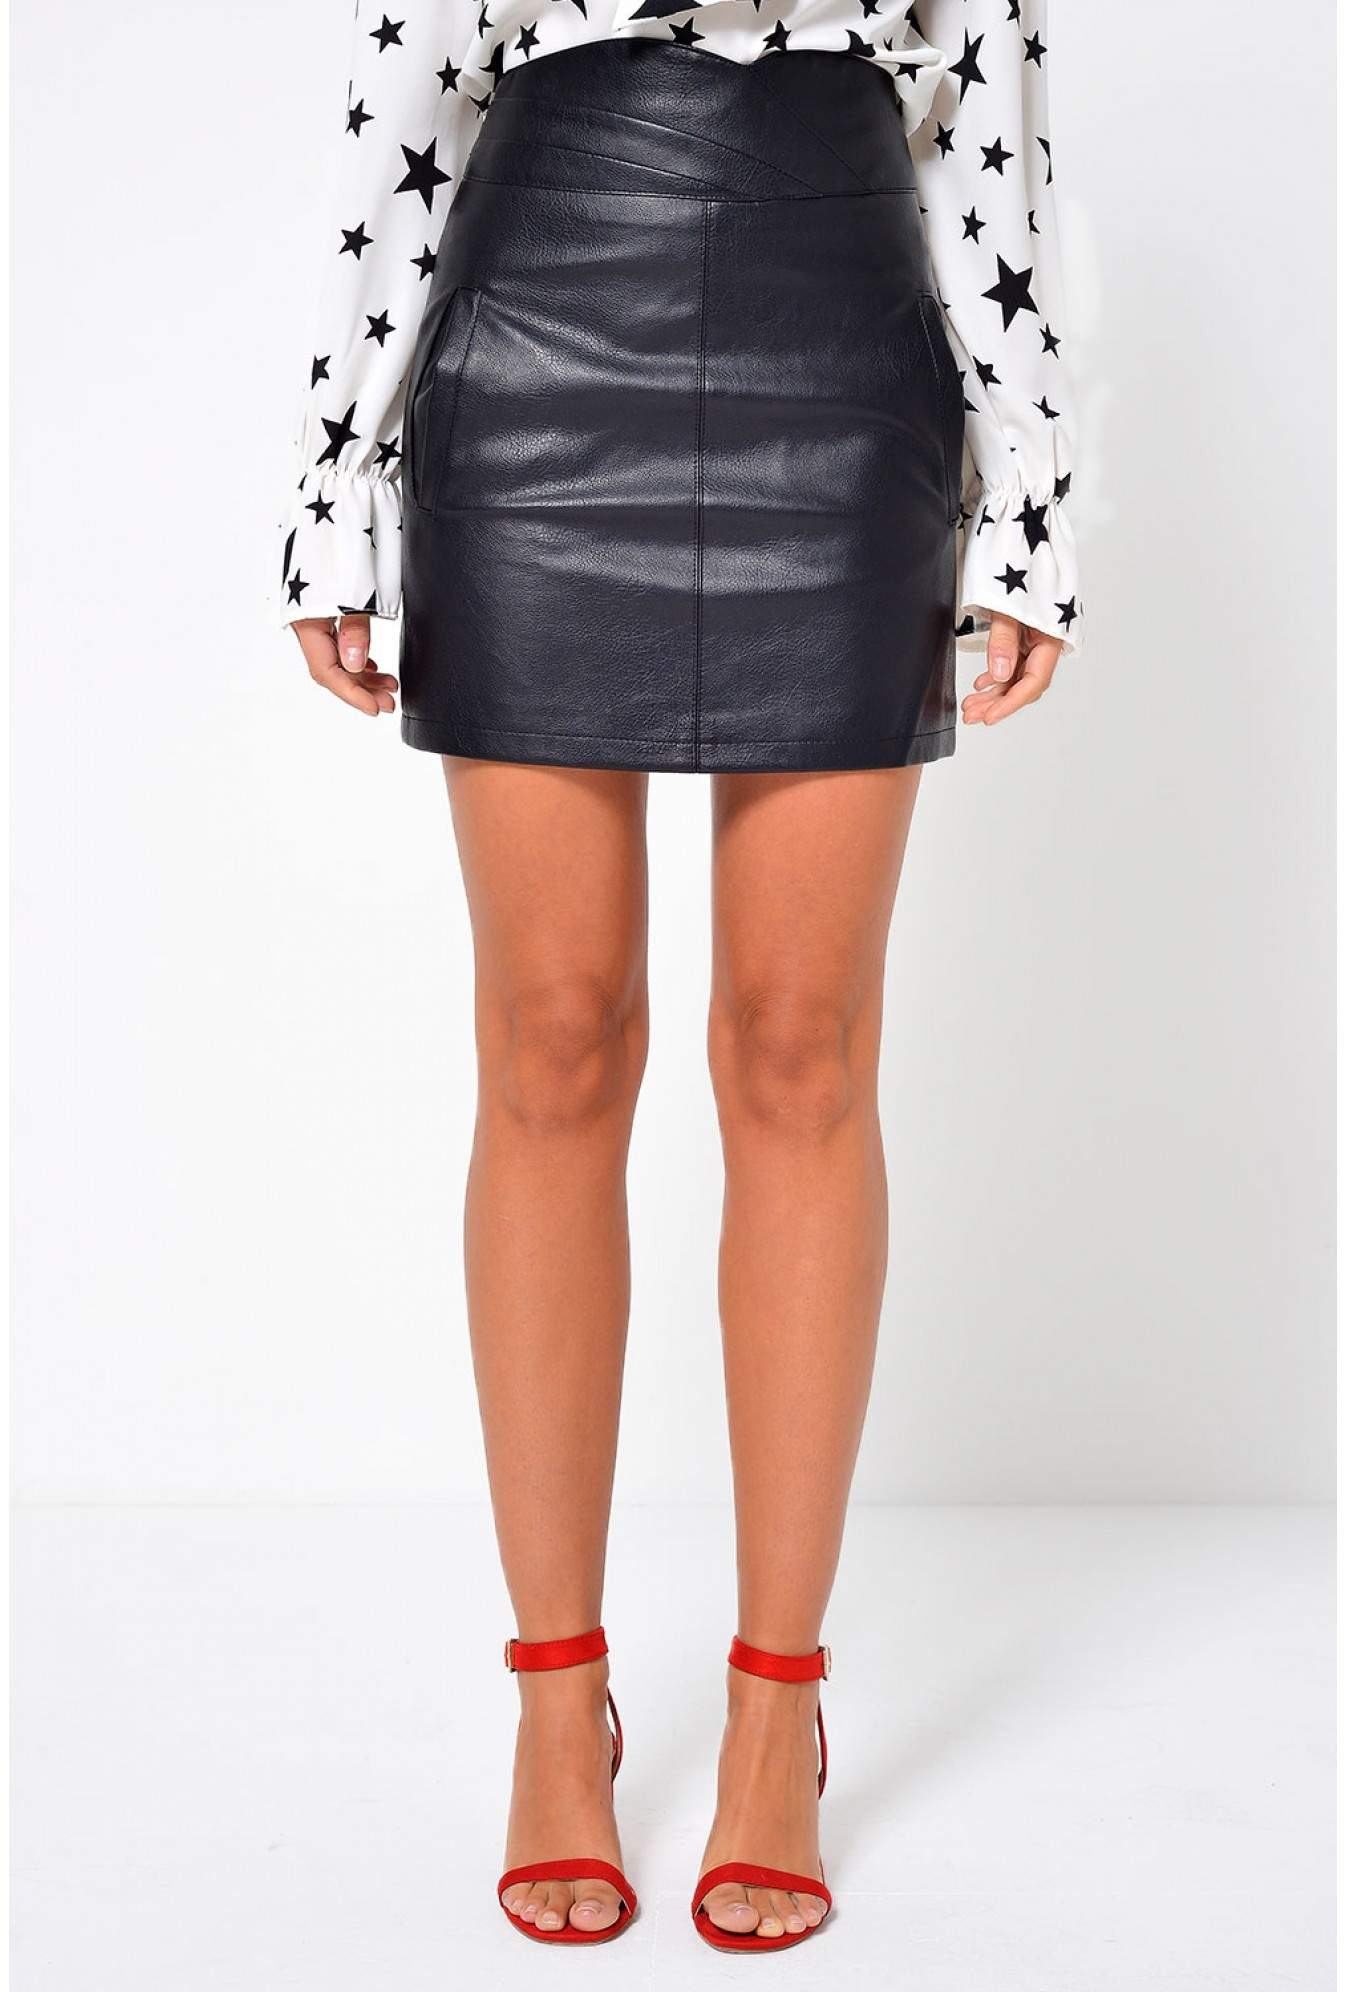 493ea9a36 Vero Moda Connery Faux Leather Skirt in Black | iCLOTHING